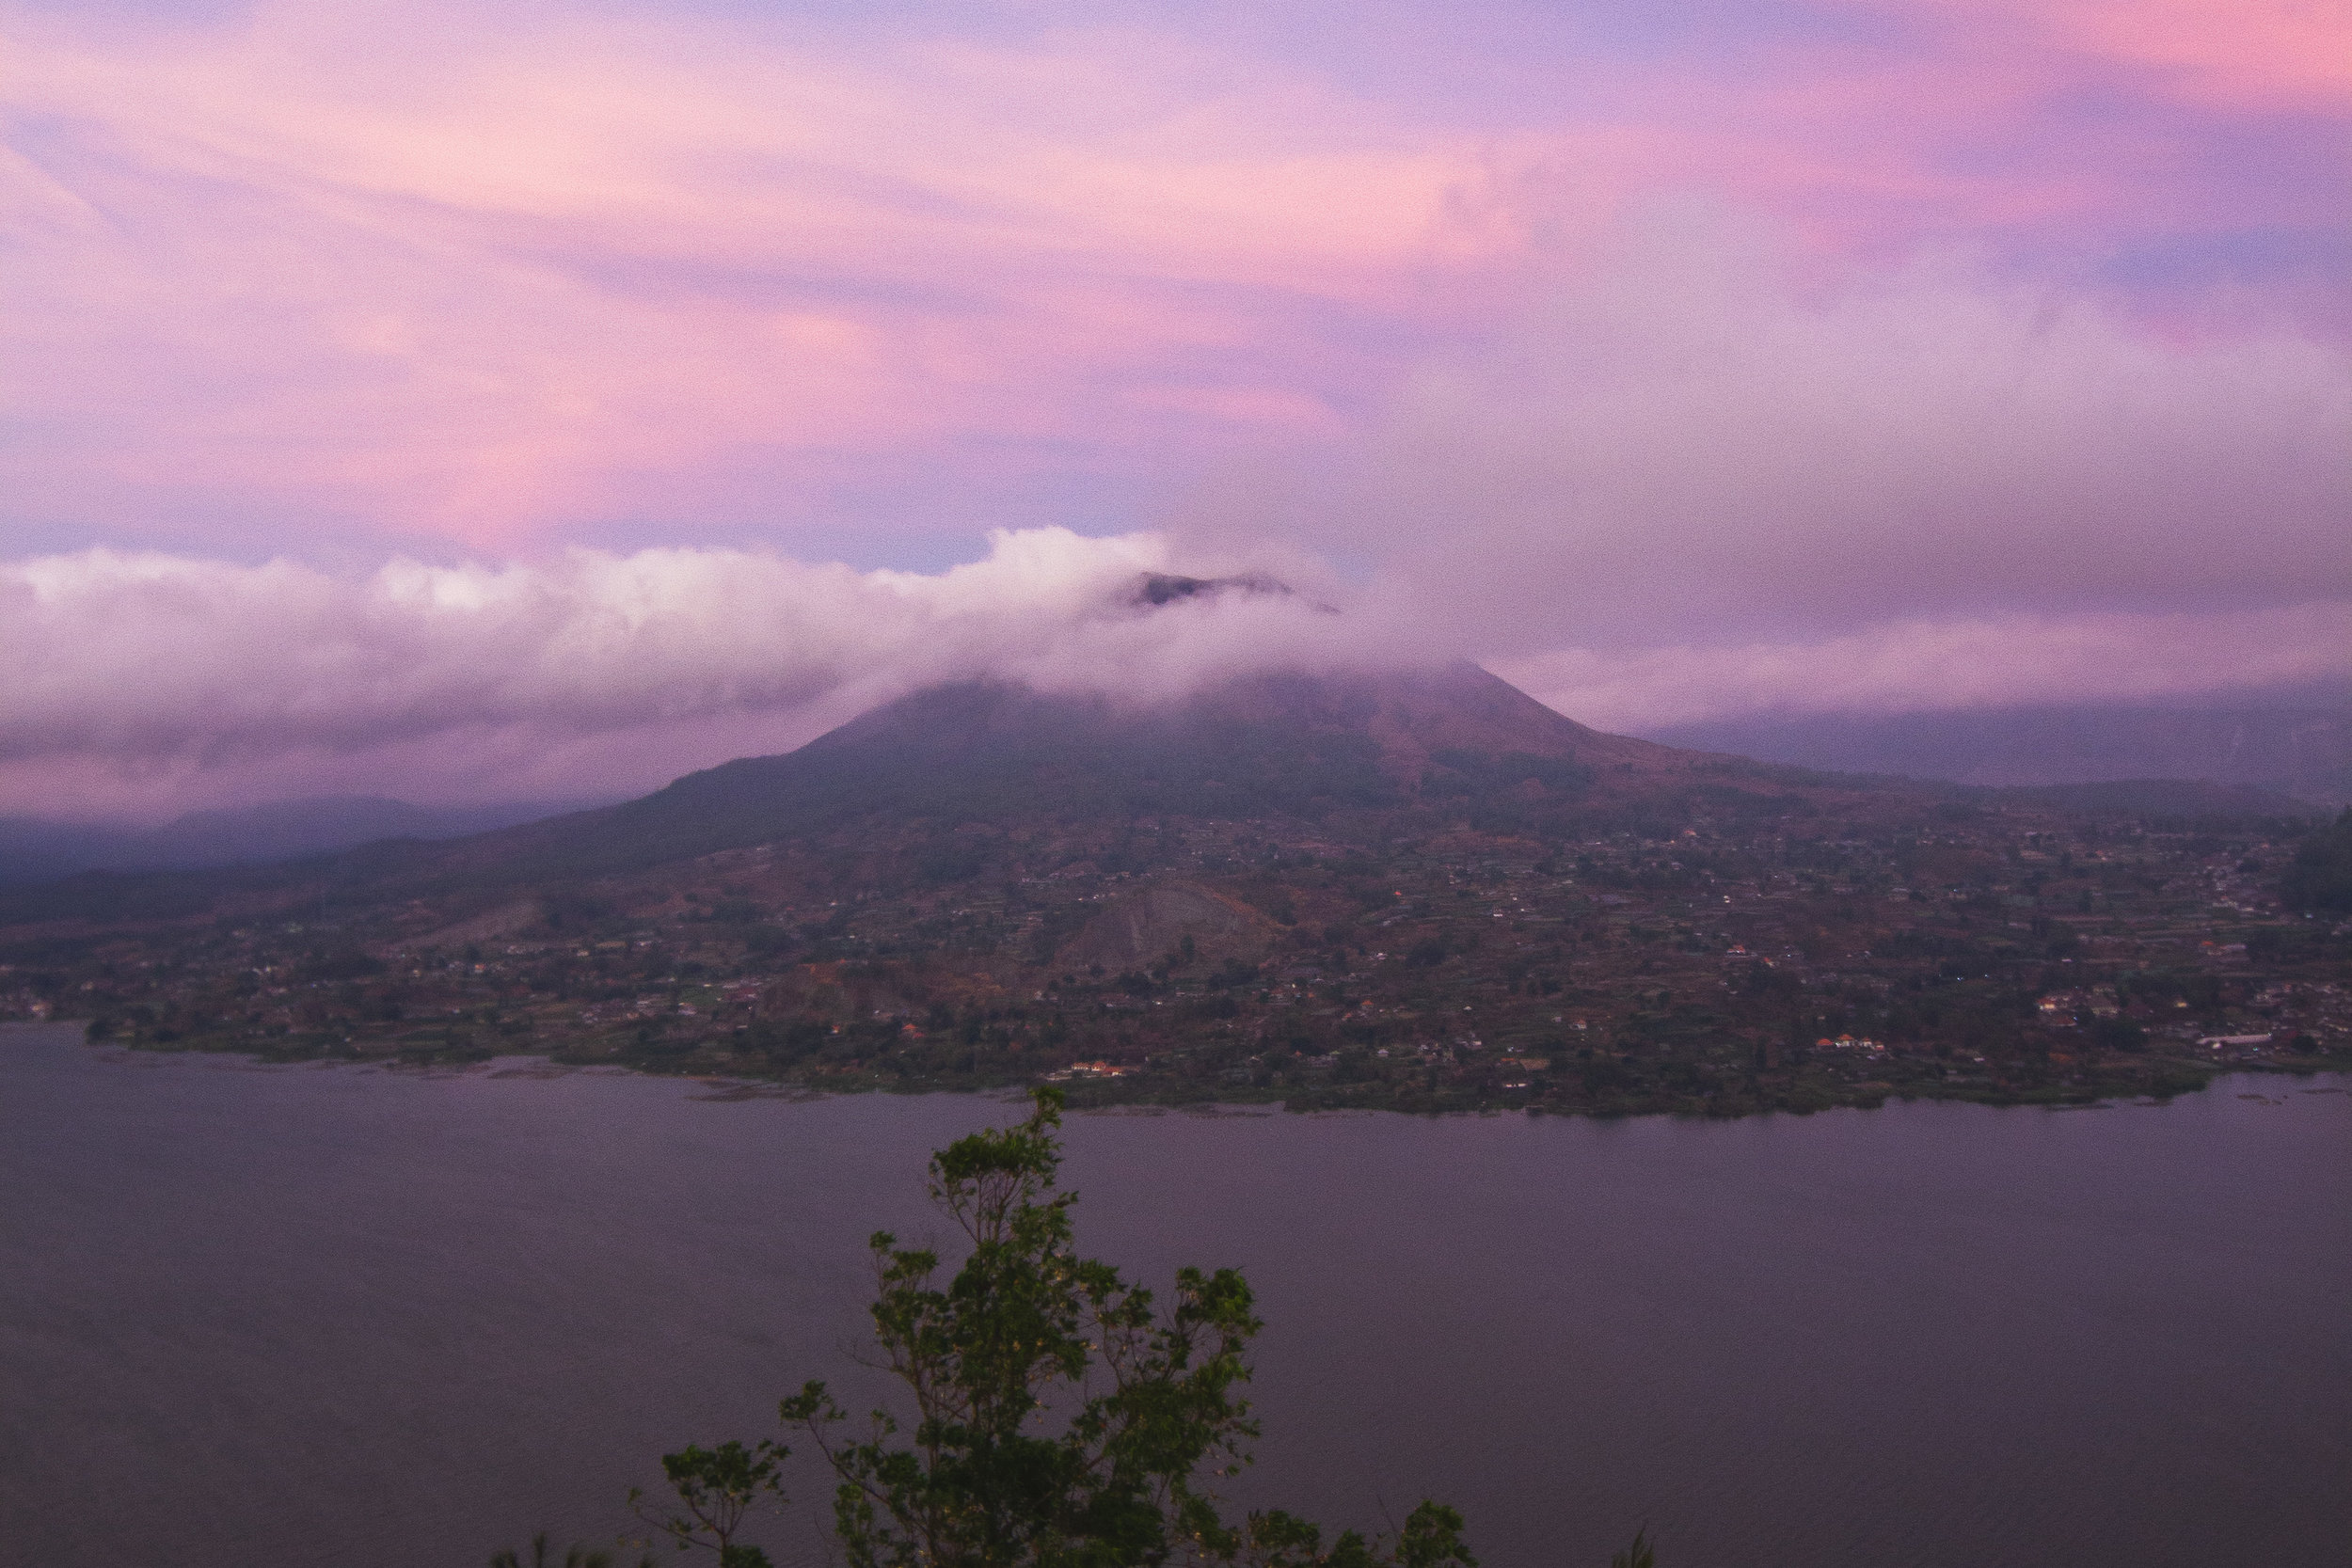 Mt. Batur obscured by clouds